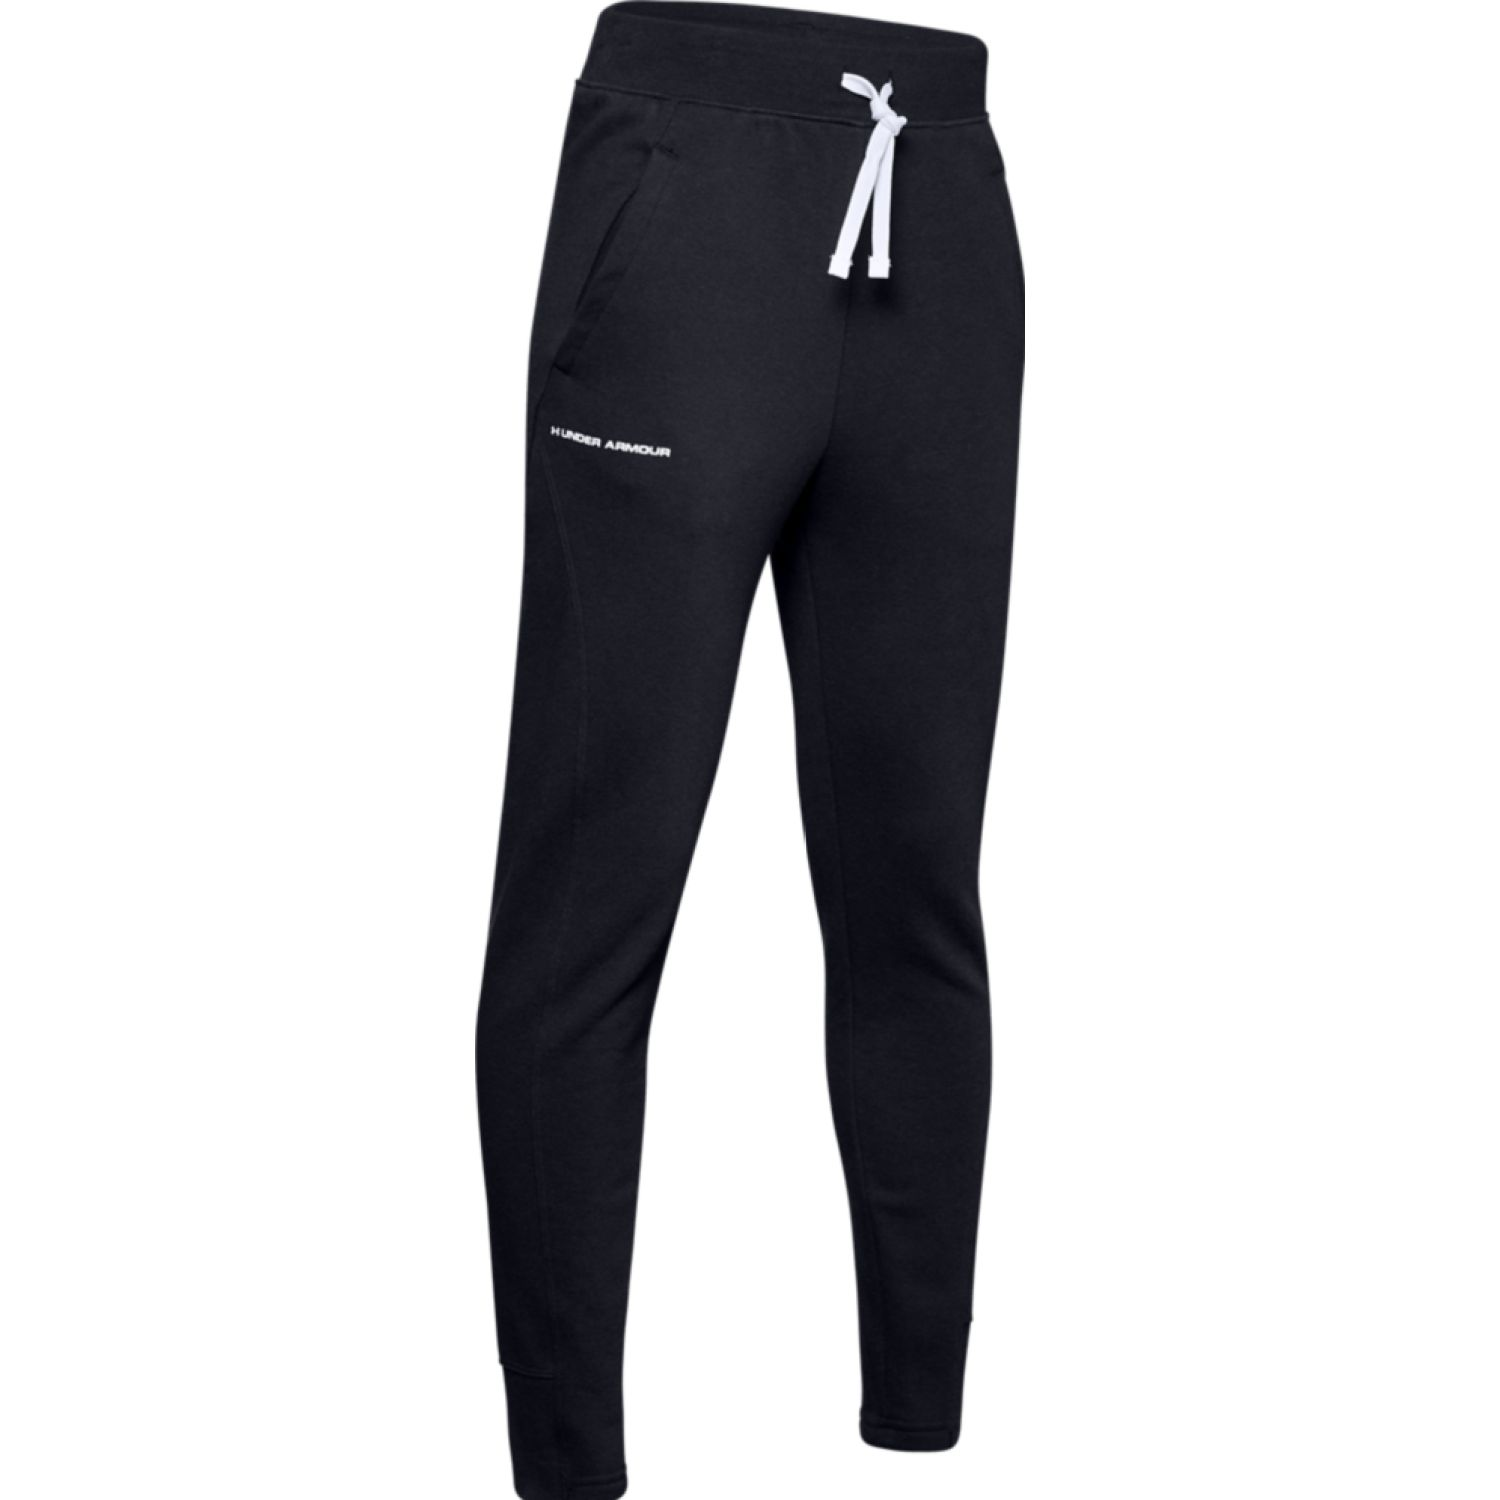 Under Armour Rival Jogger Negro Pantalones